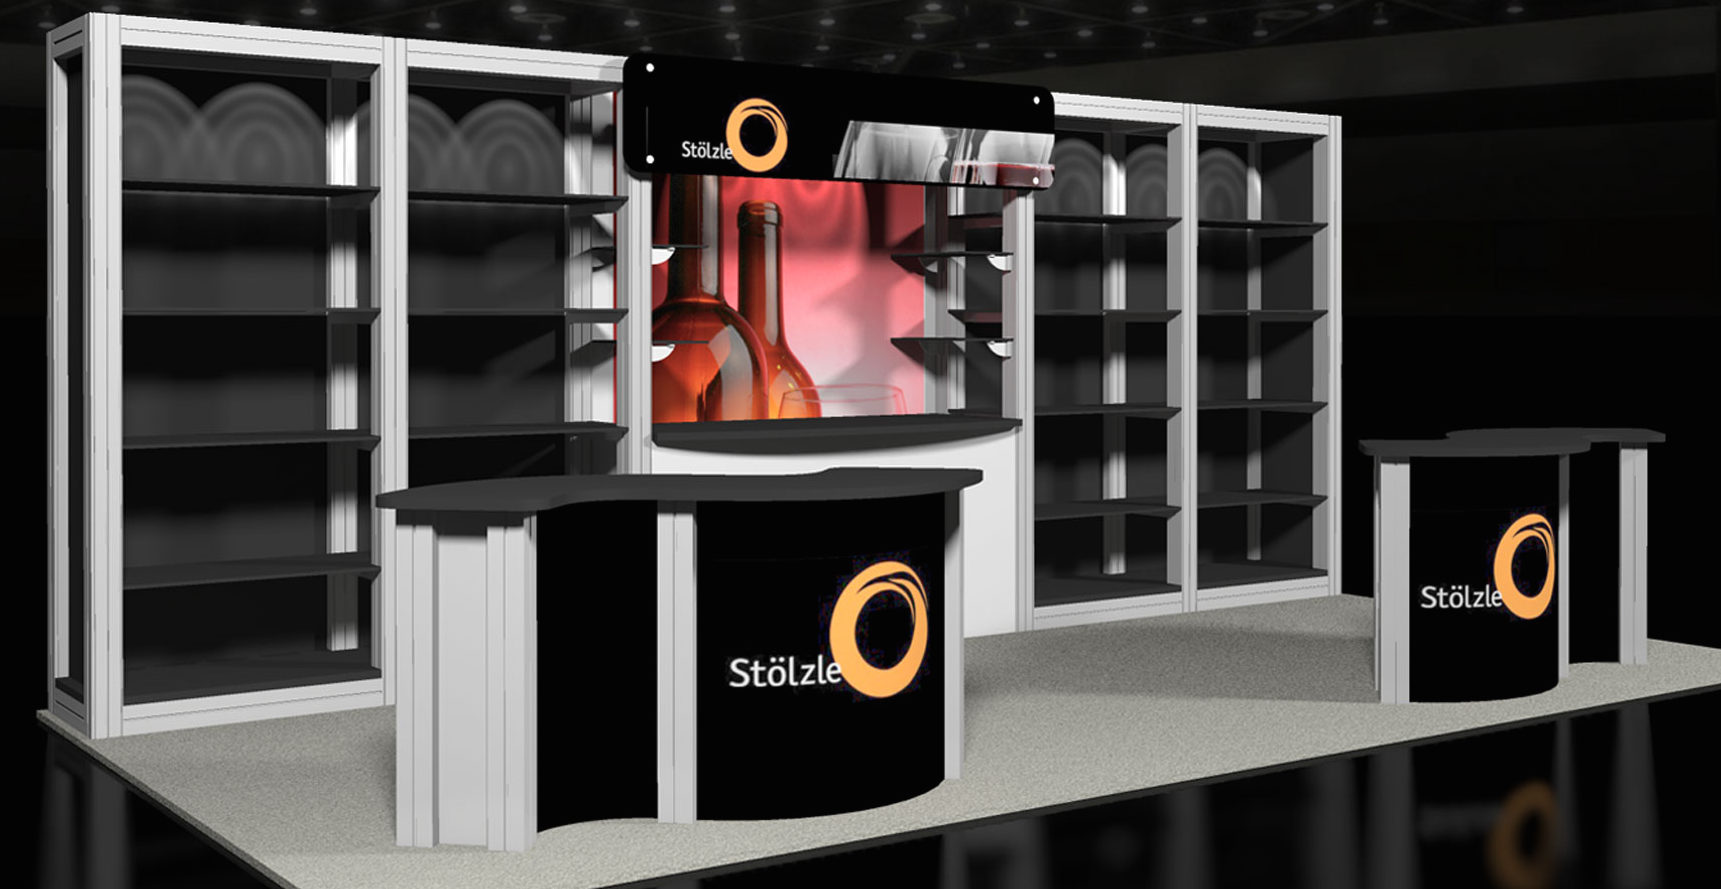 How to make your booth stand out on a budget voxx exhibits setting yourself apart at a trade show isnt easy with other vendors and booths trying to attract attendees within a limited space it can be challenging solutioingenieria Choice Image